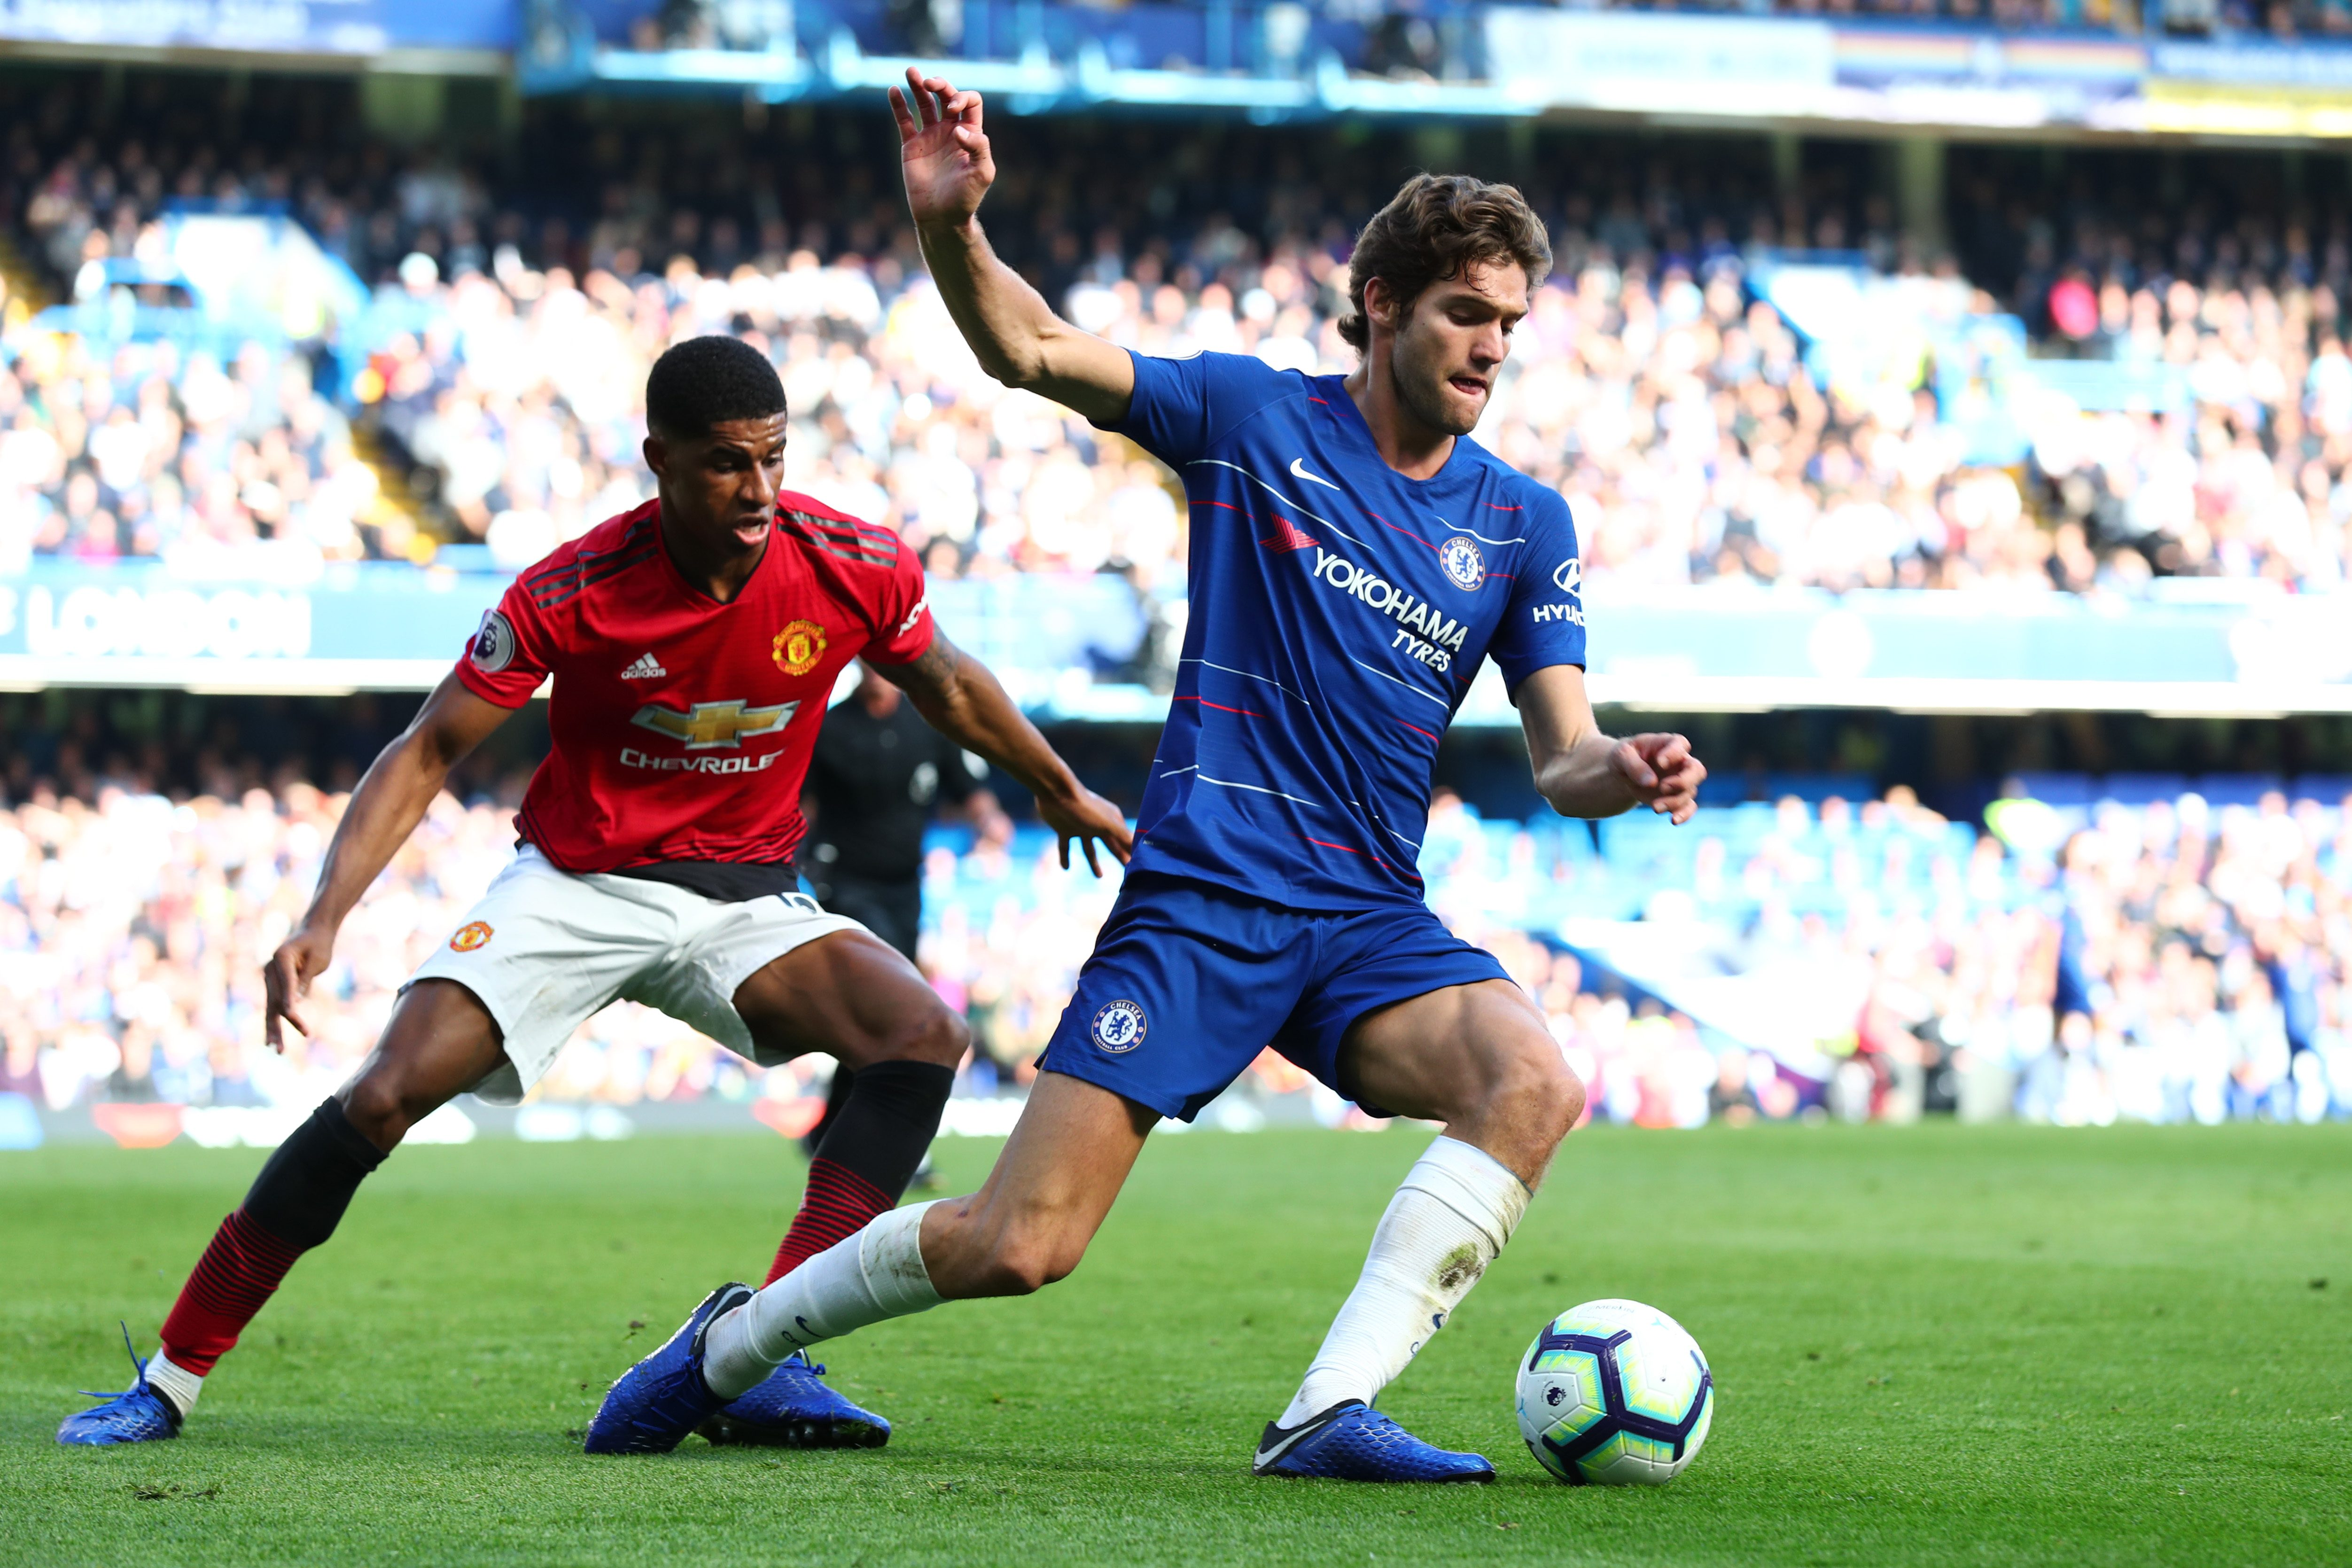 Chelsea vs new england watch live